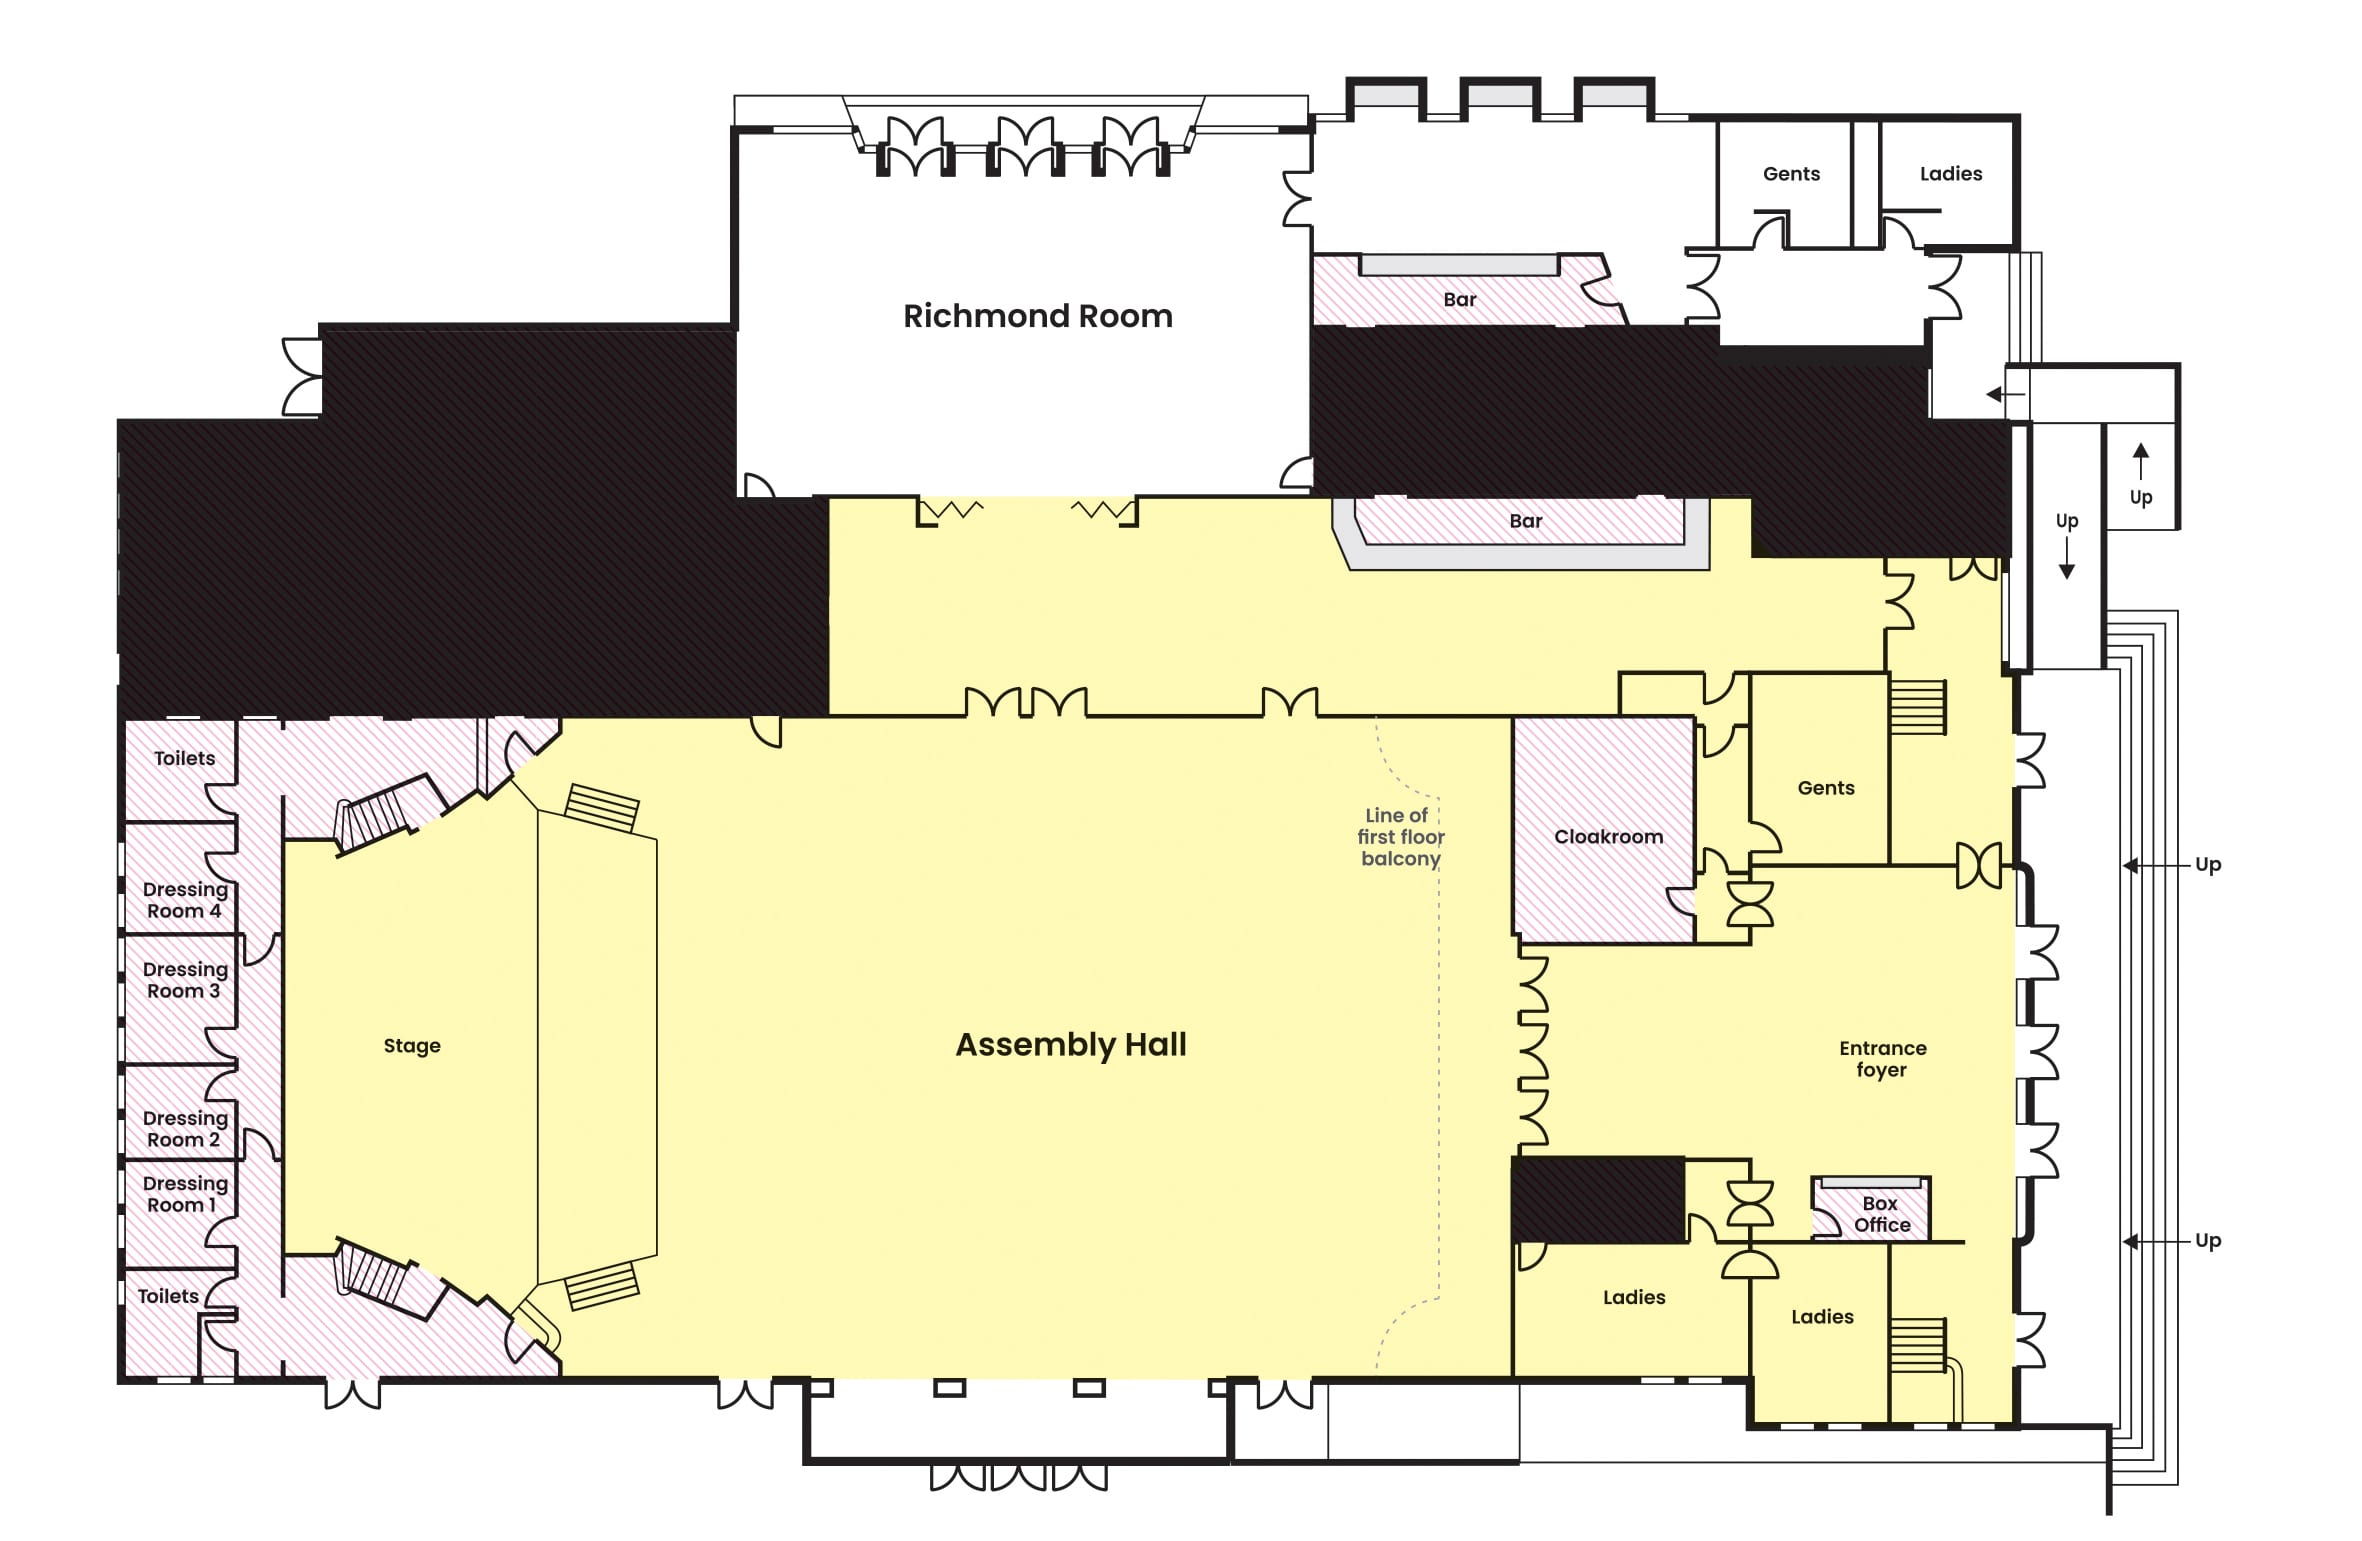 Assembly Hall - Floor Plans